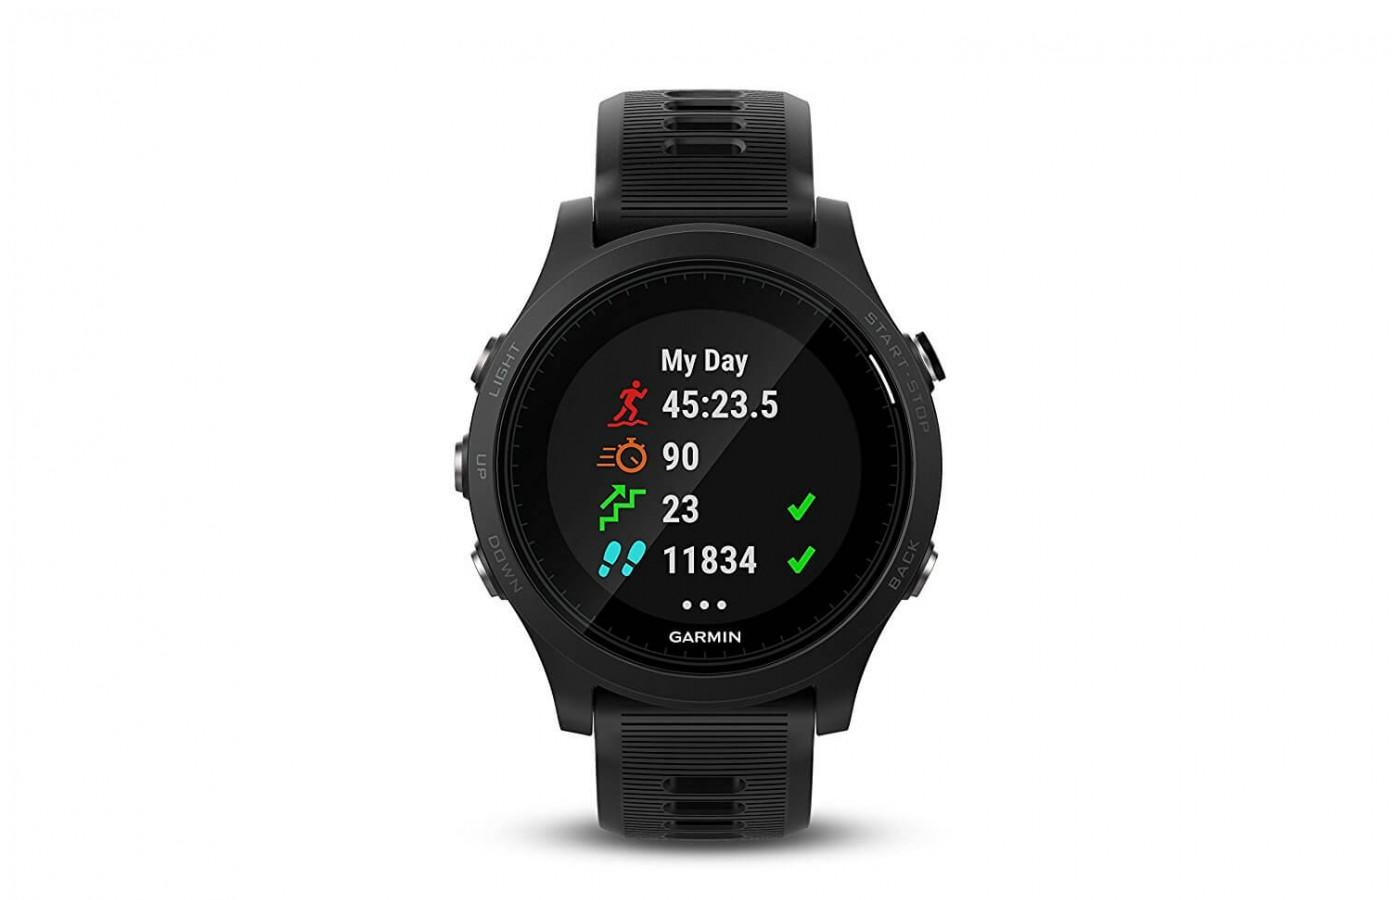 The 935 offers daily activity tracking